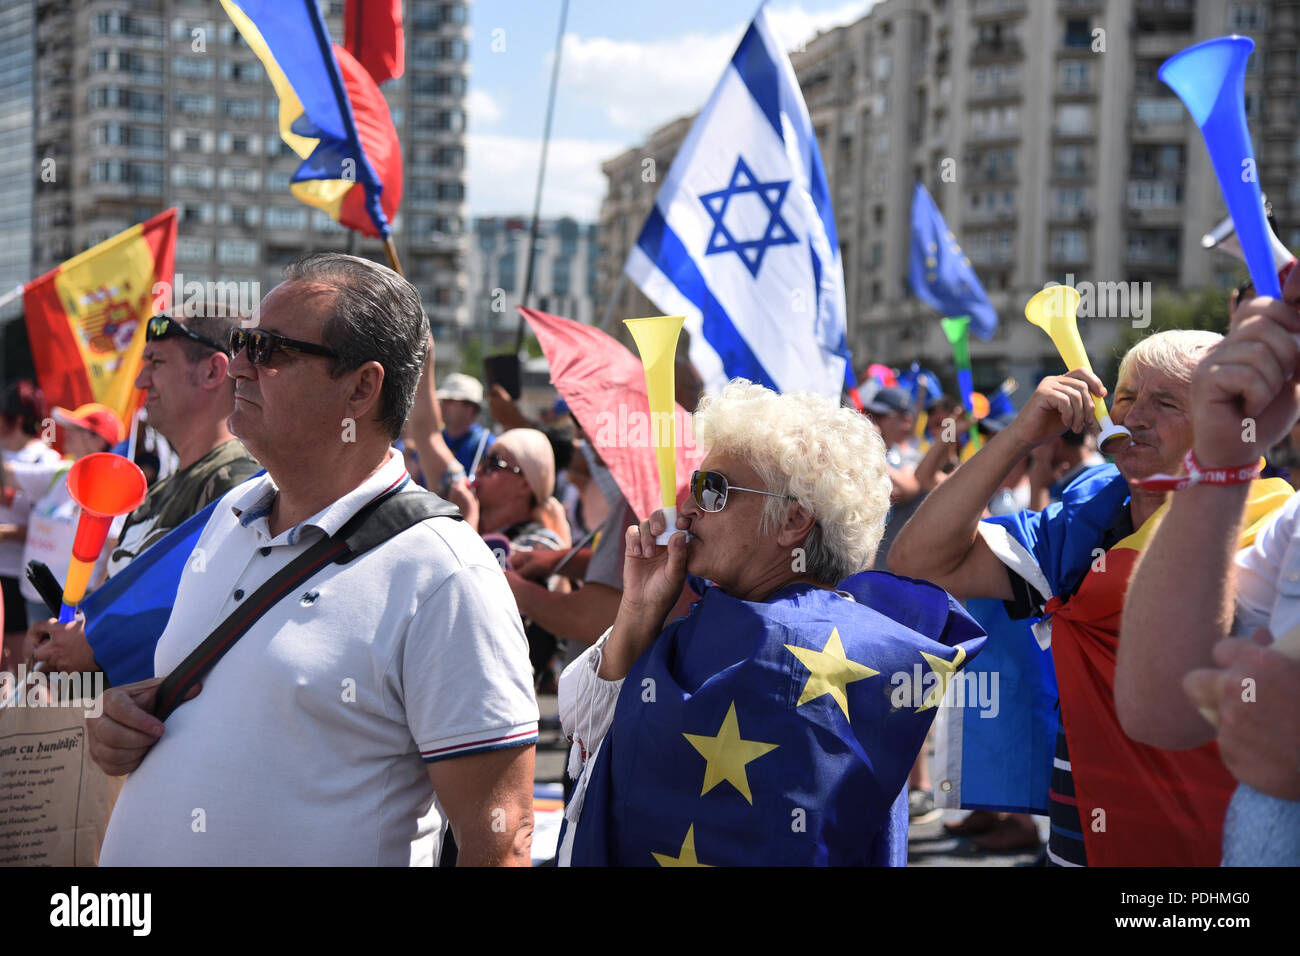 Bucharest, Romania. 10th August, 2018. Romanian expatriates protest against the government in Bucharest - 10 August 2018 Credit: Alberto Grosescu/Alamy Live News Stock Photo